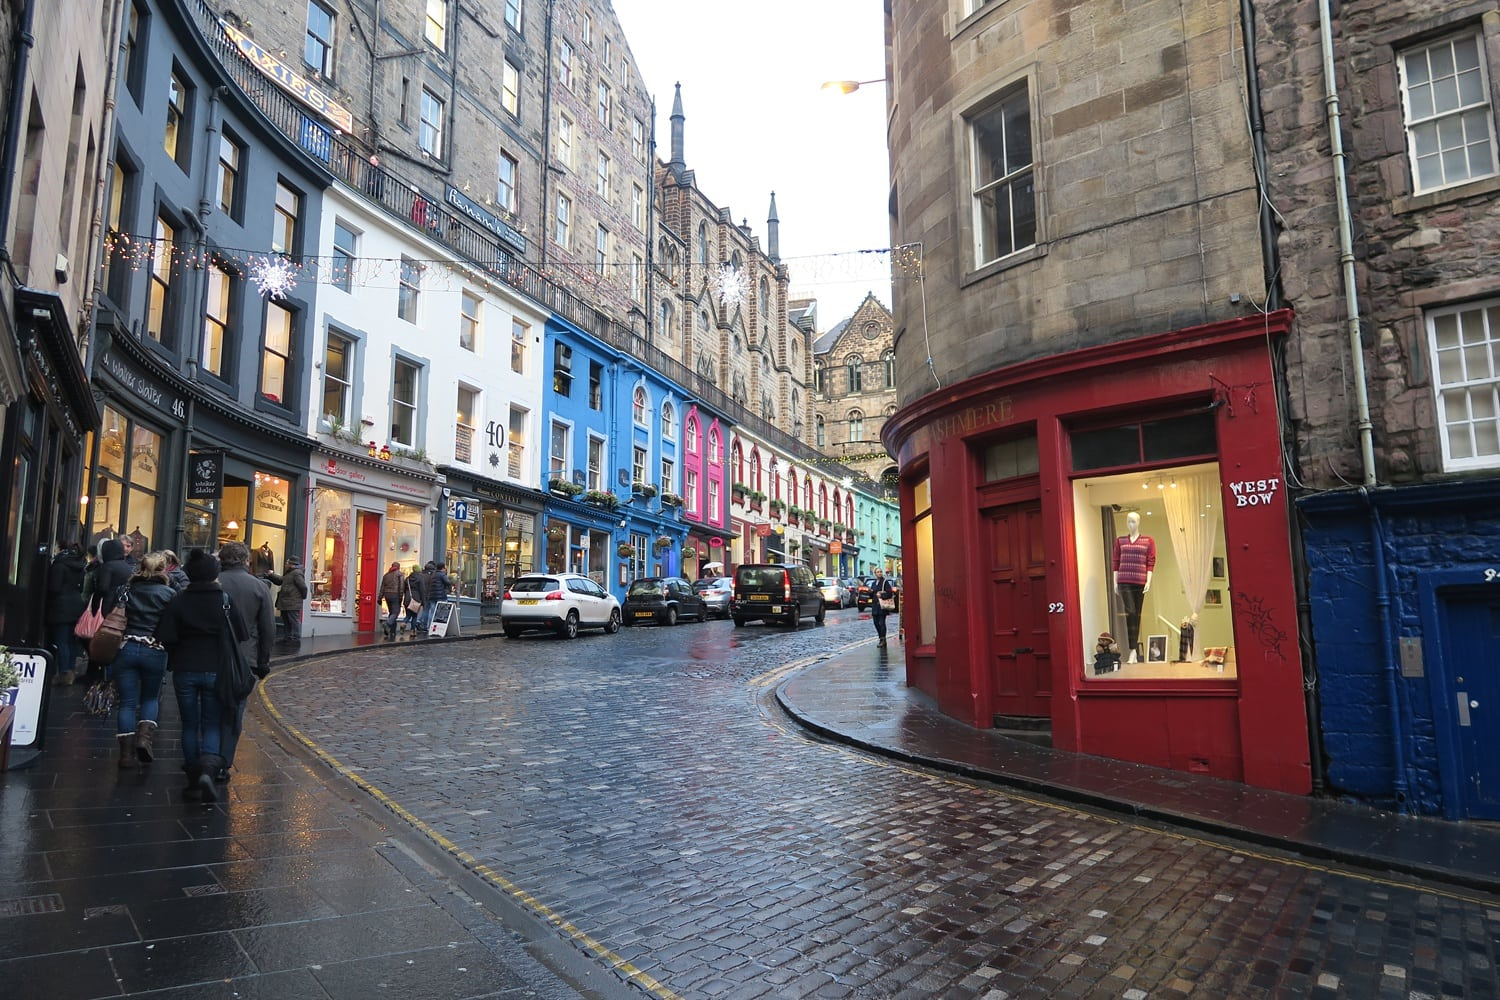 Harry Potter Trail - Wandele auf den Spuren von J.K. Rowling in Edinburgh